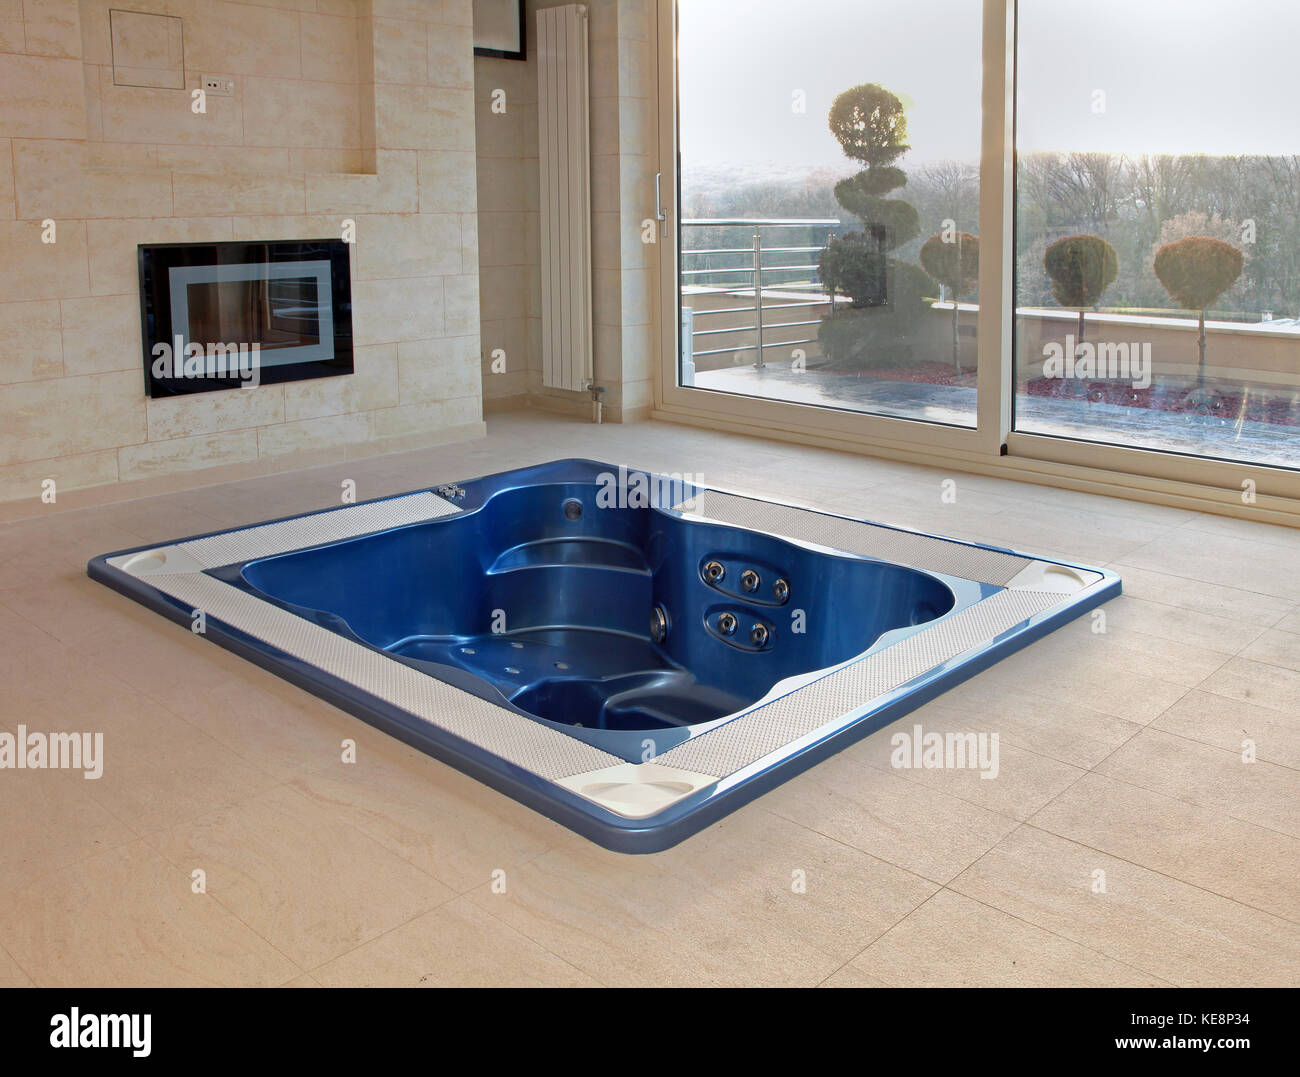 Large hot tub built in flor of room interior Stock Photo: 163691448 ...